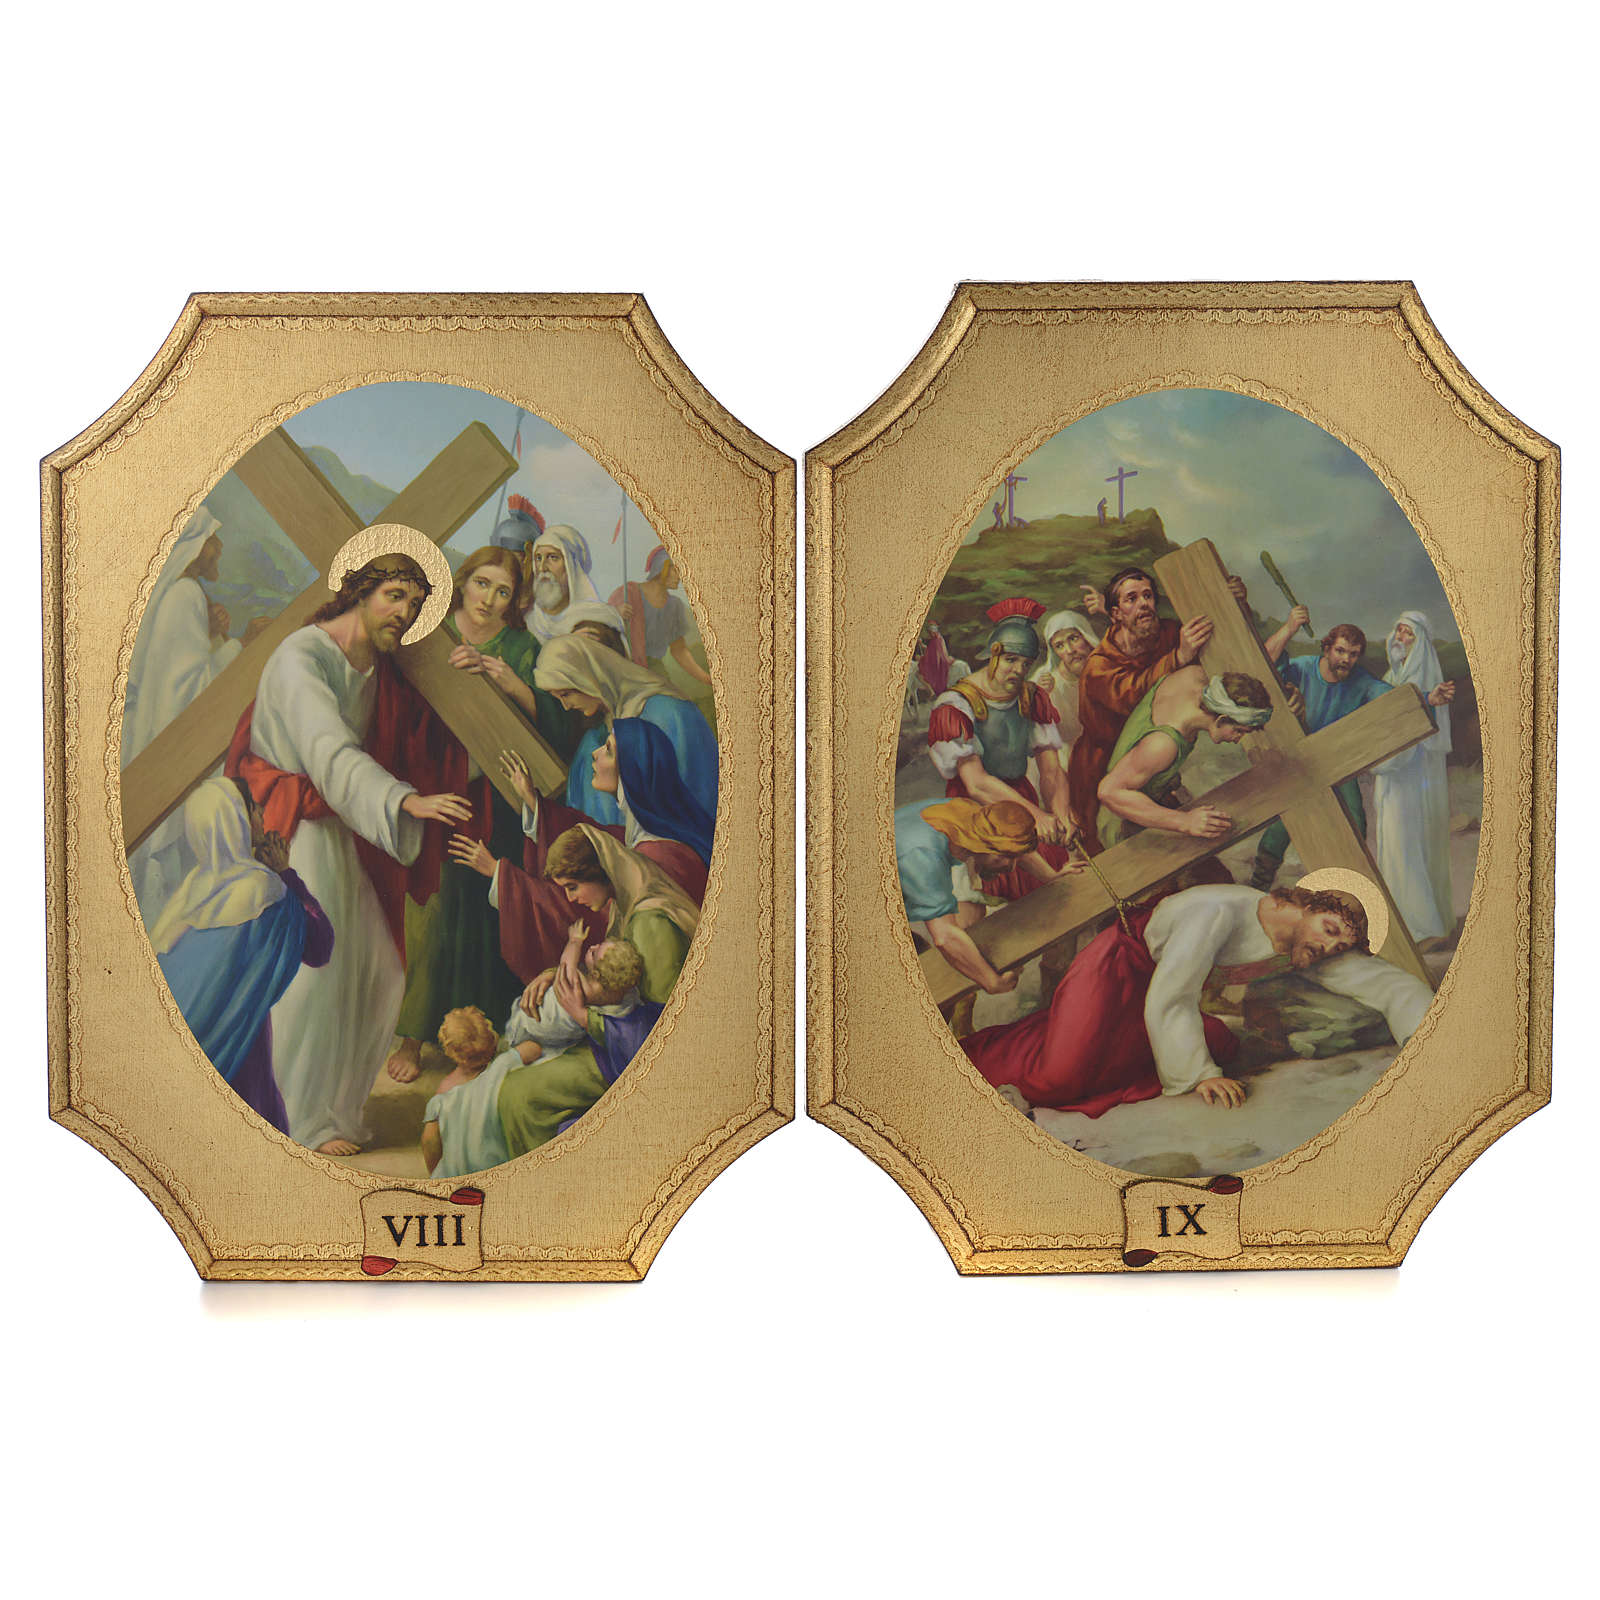 Way of the cross with 15 stations on wood with gold foil 52.5x35cm 4